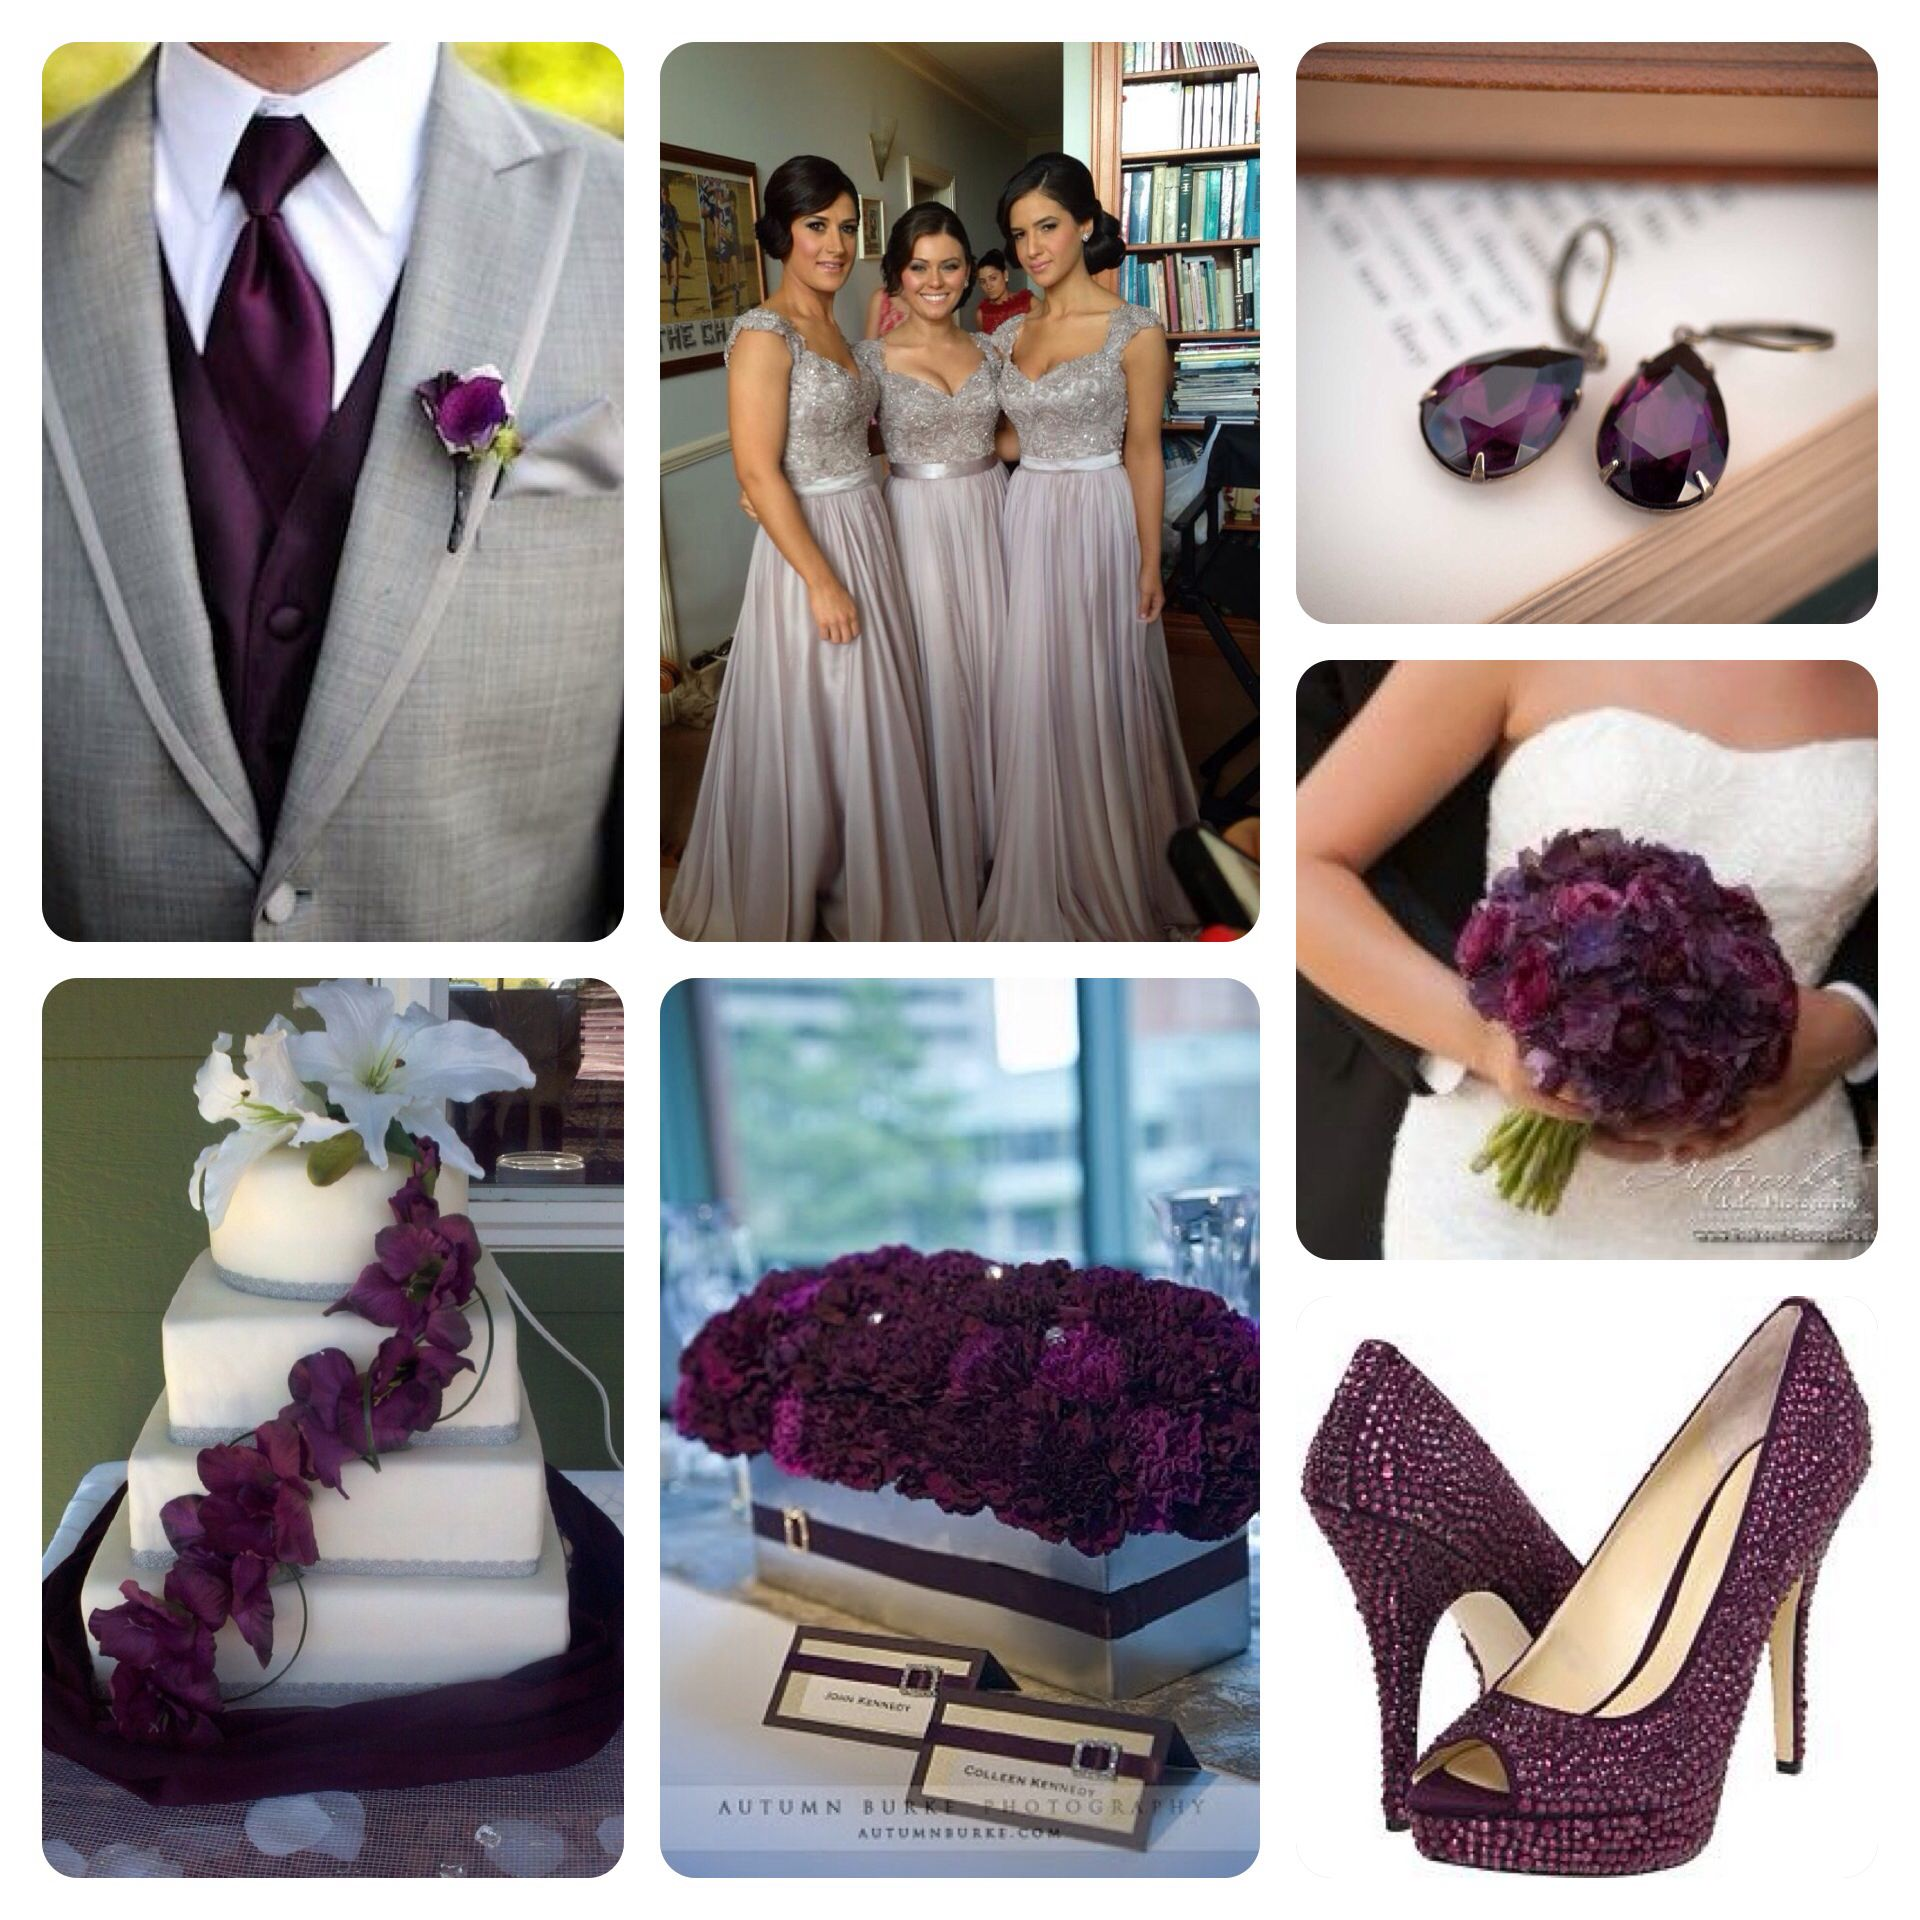 Grey Wedding Ideas: Grey And Dark Plum Wedding! In Love With With The Grooms